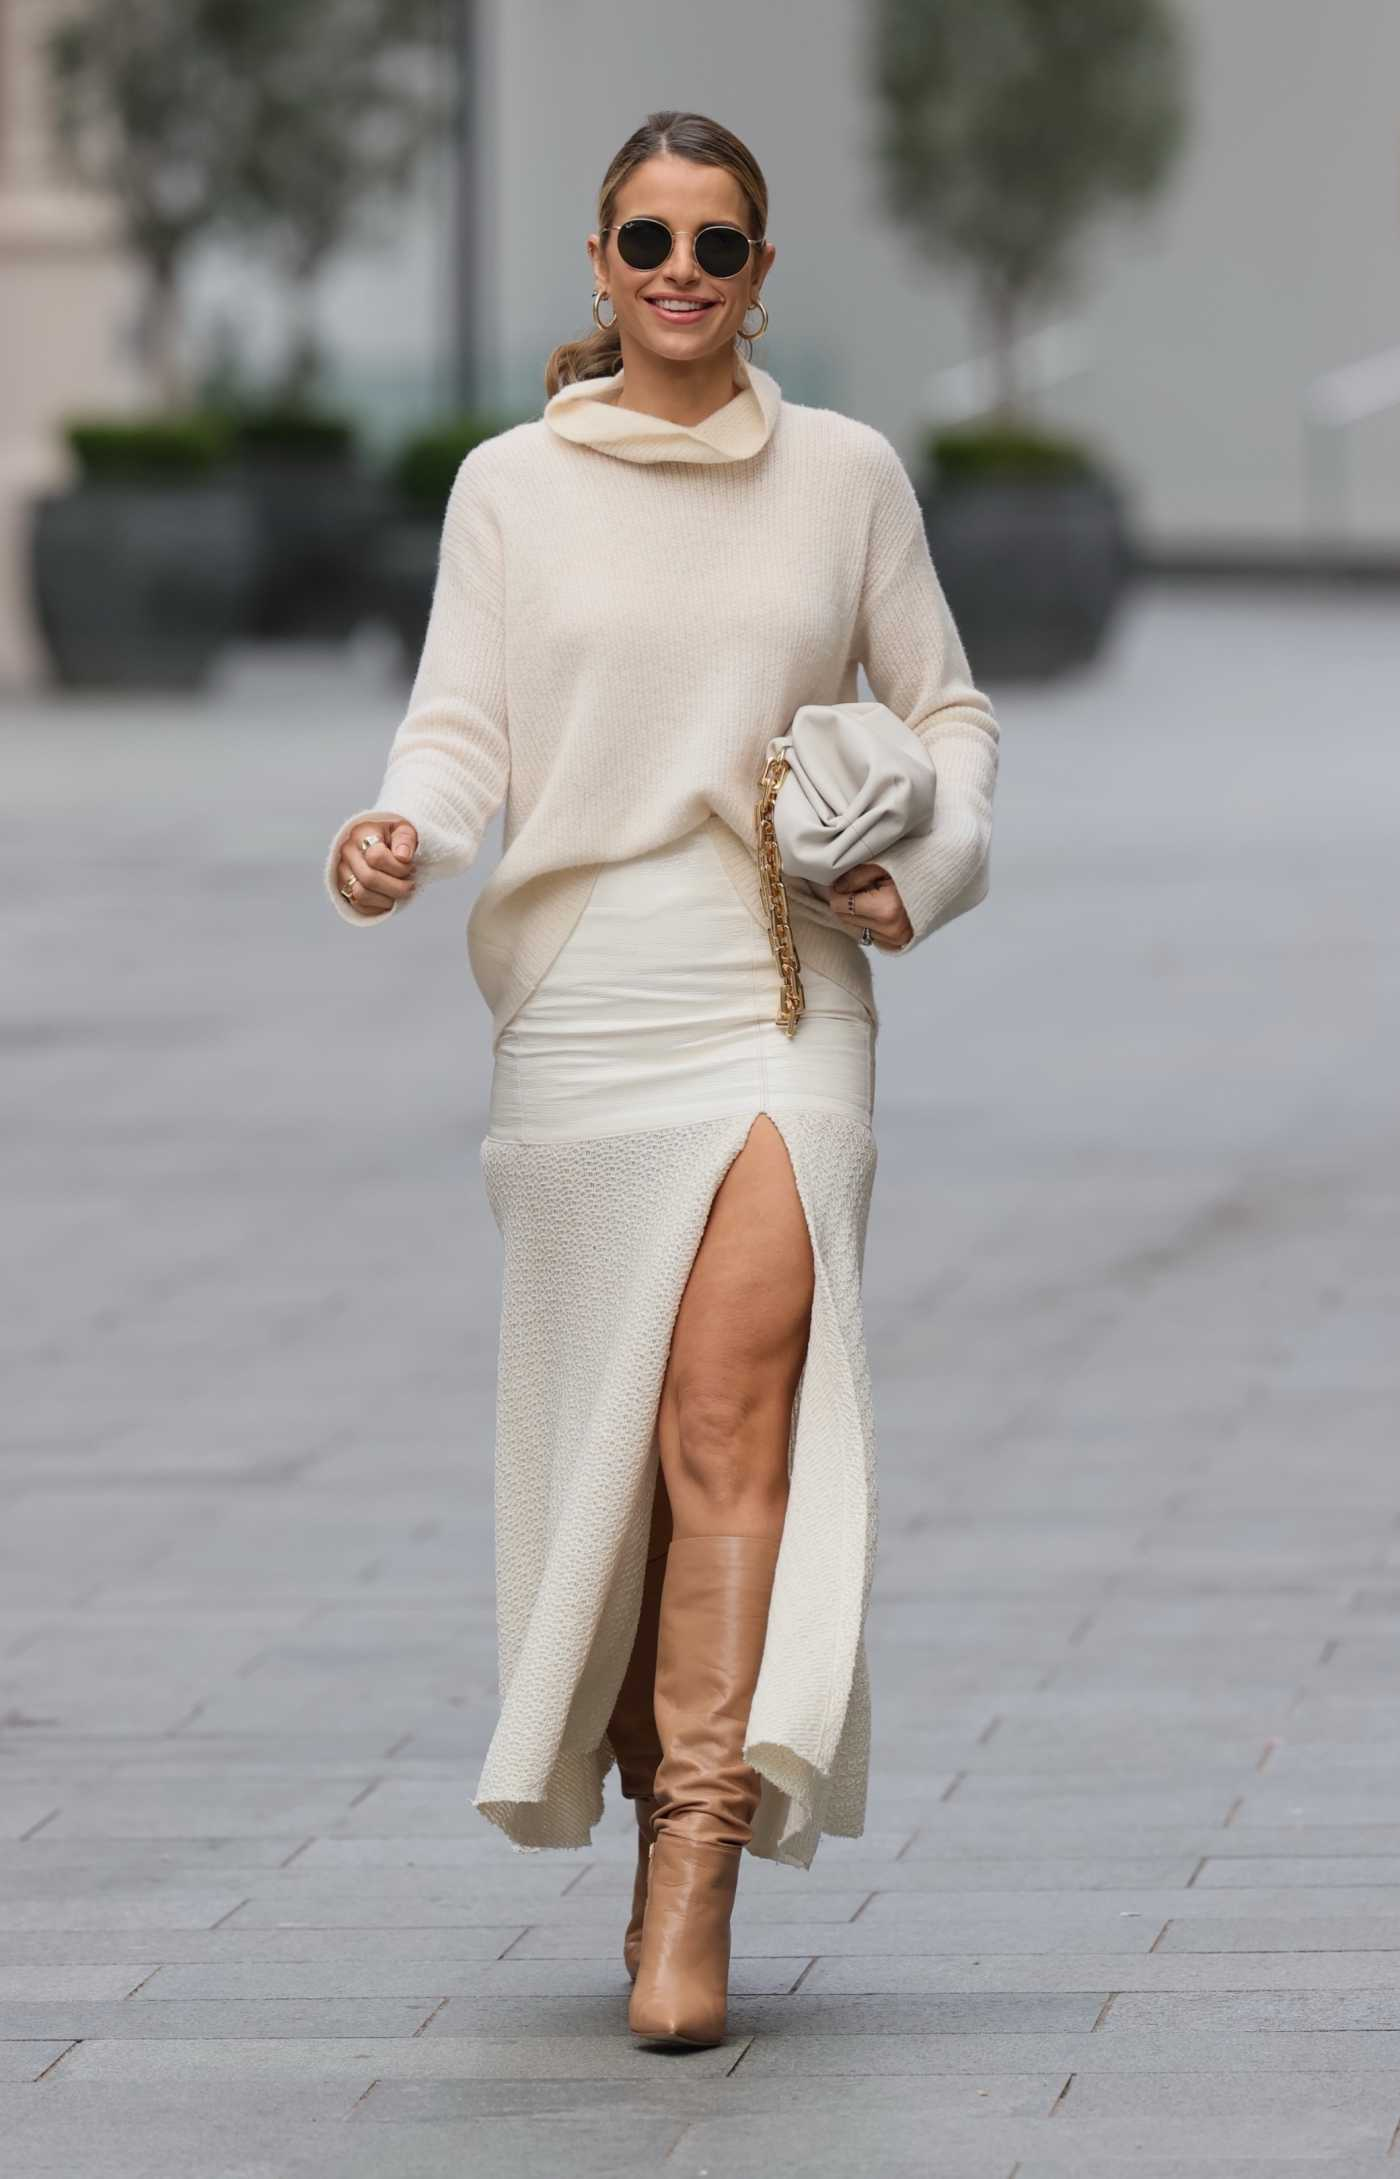 Vogue Williams in a Beige Roll Neck Knitted Jumper Was Seen Out in London 03/21/2021